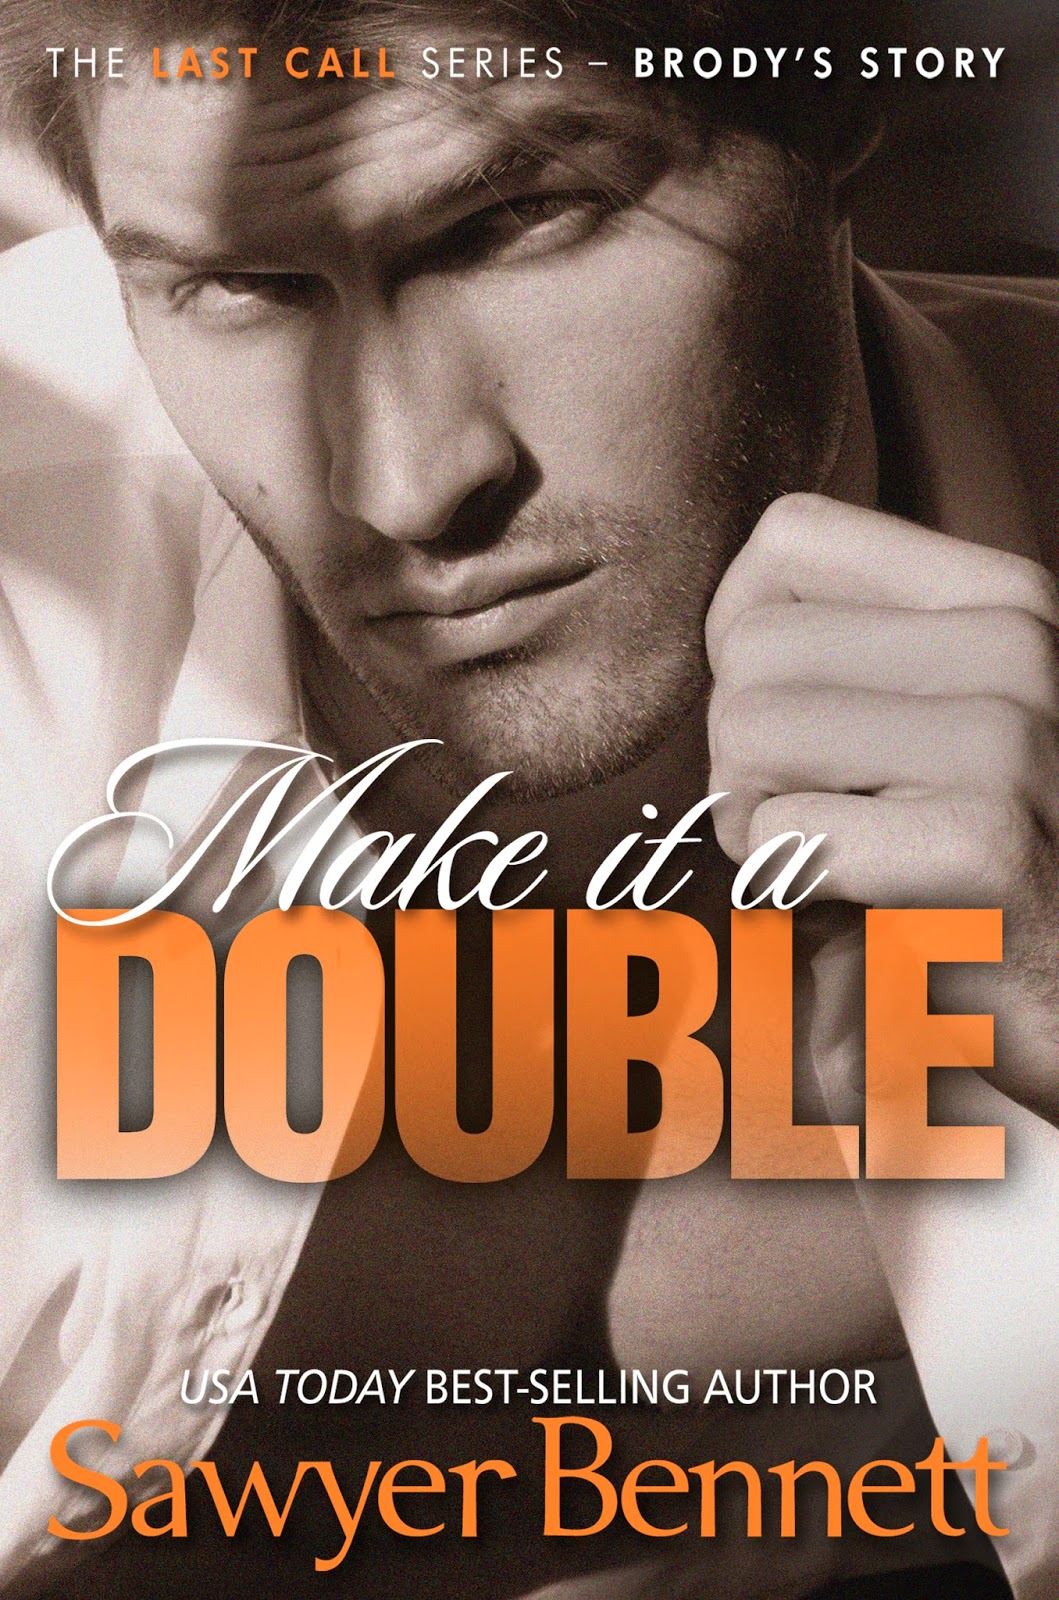 https://www.goodreads.com/book/show/20360010-make-it-a-double